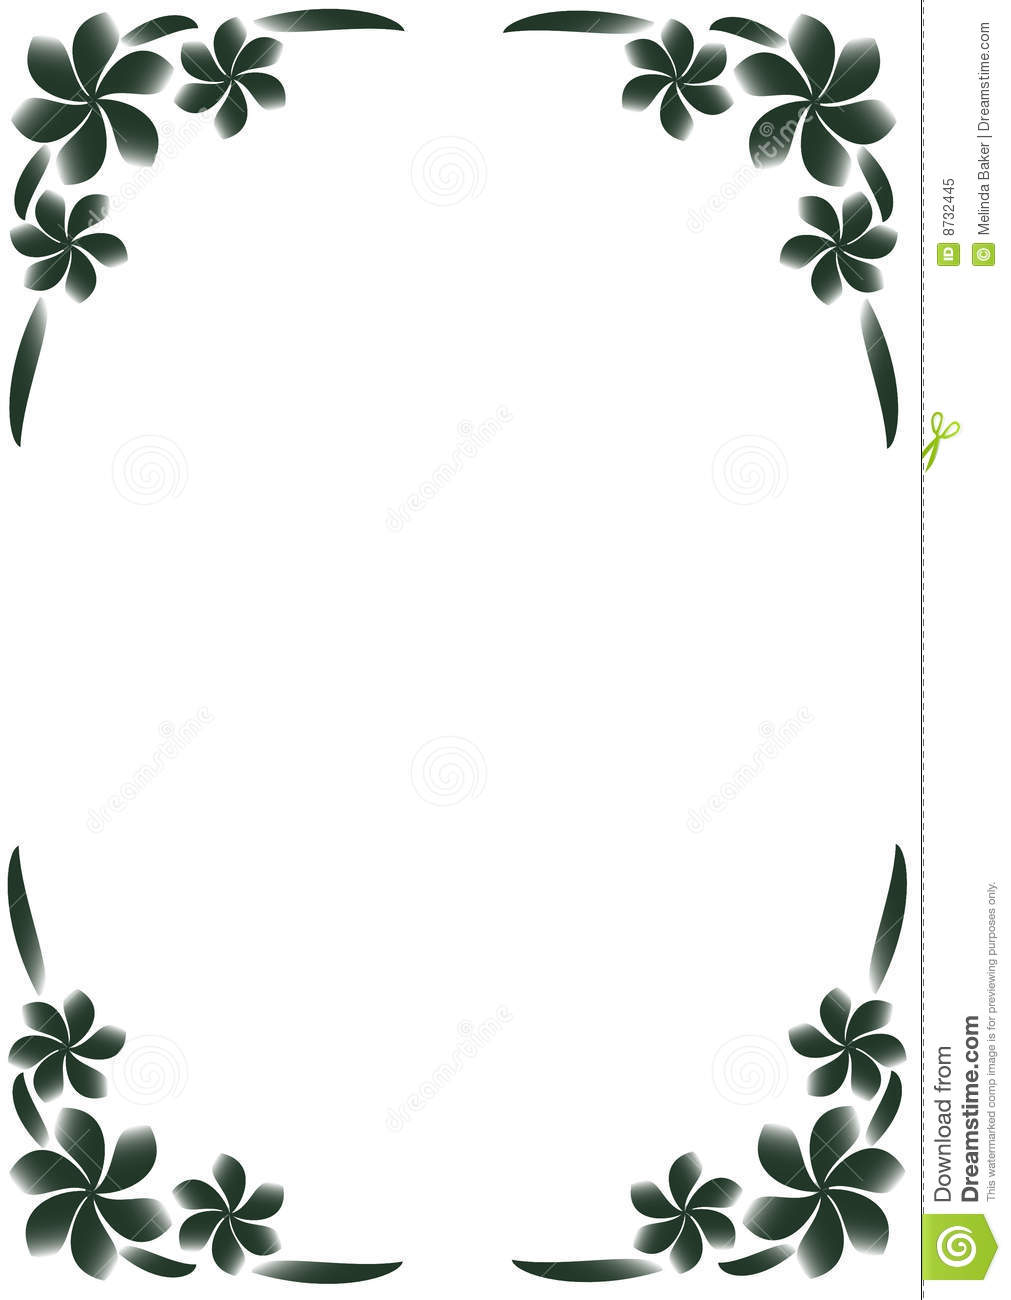 18 black and white flower border designs images black and white black and white flower borders free mightylinksfo Image collections